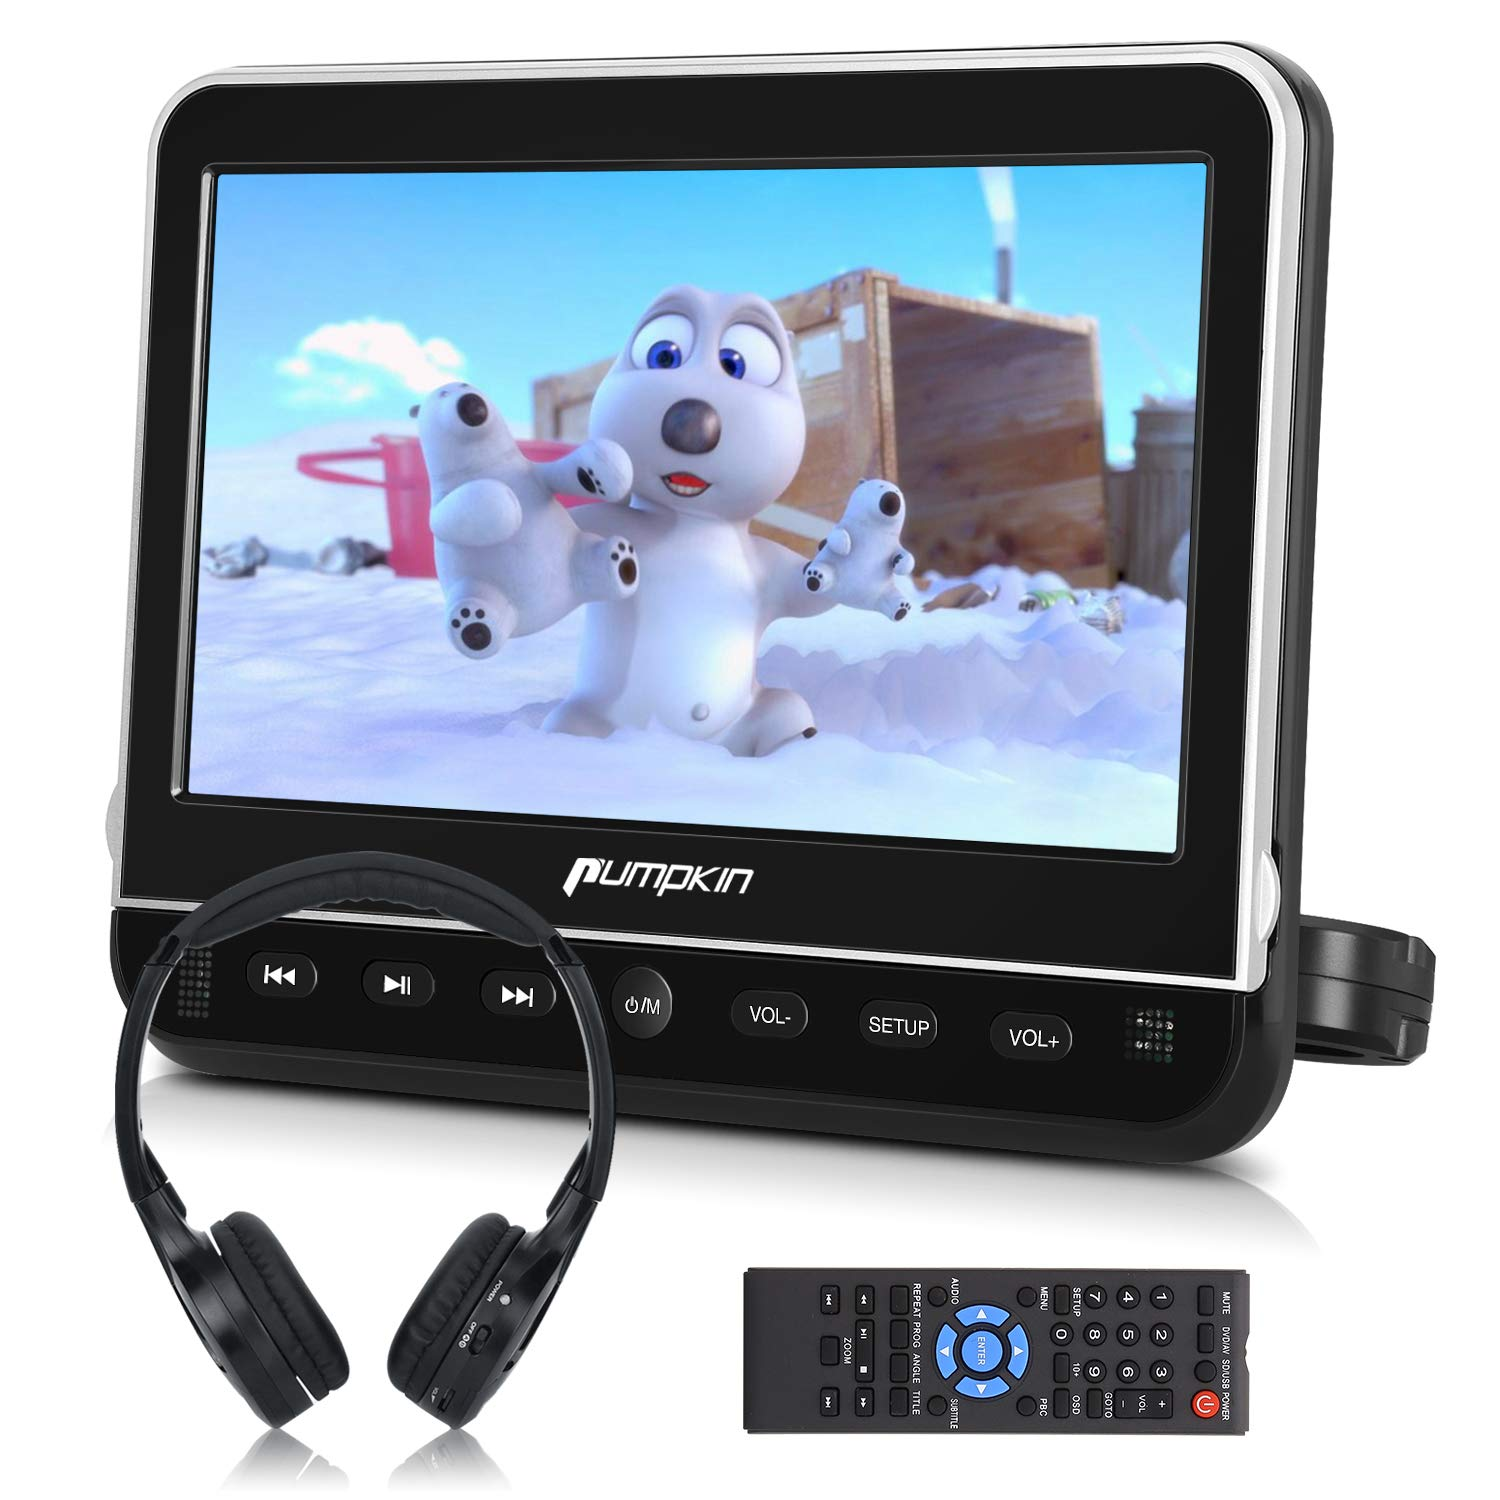 PUMPKIN 10.1'' Car Headrest DVD Player with Free Headphone, Support 1080P Video, HDMI Input, AV in/Out, Region Free, USB/SD